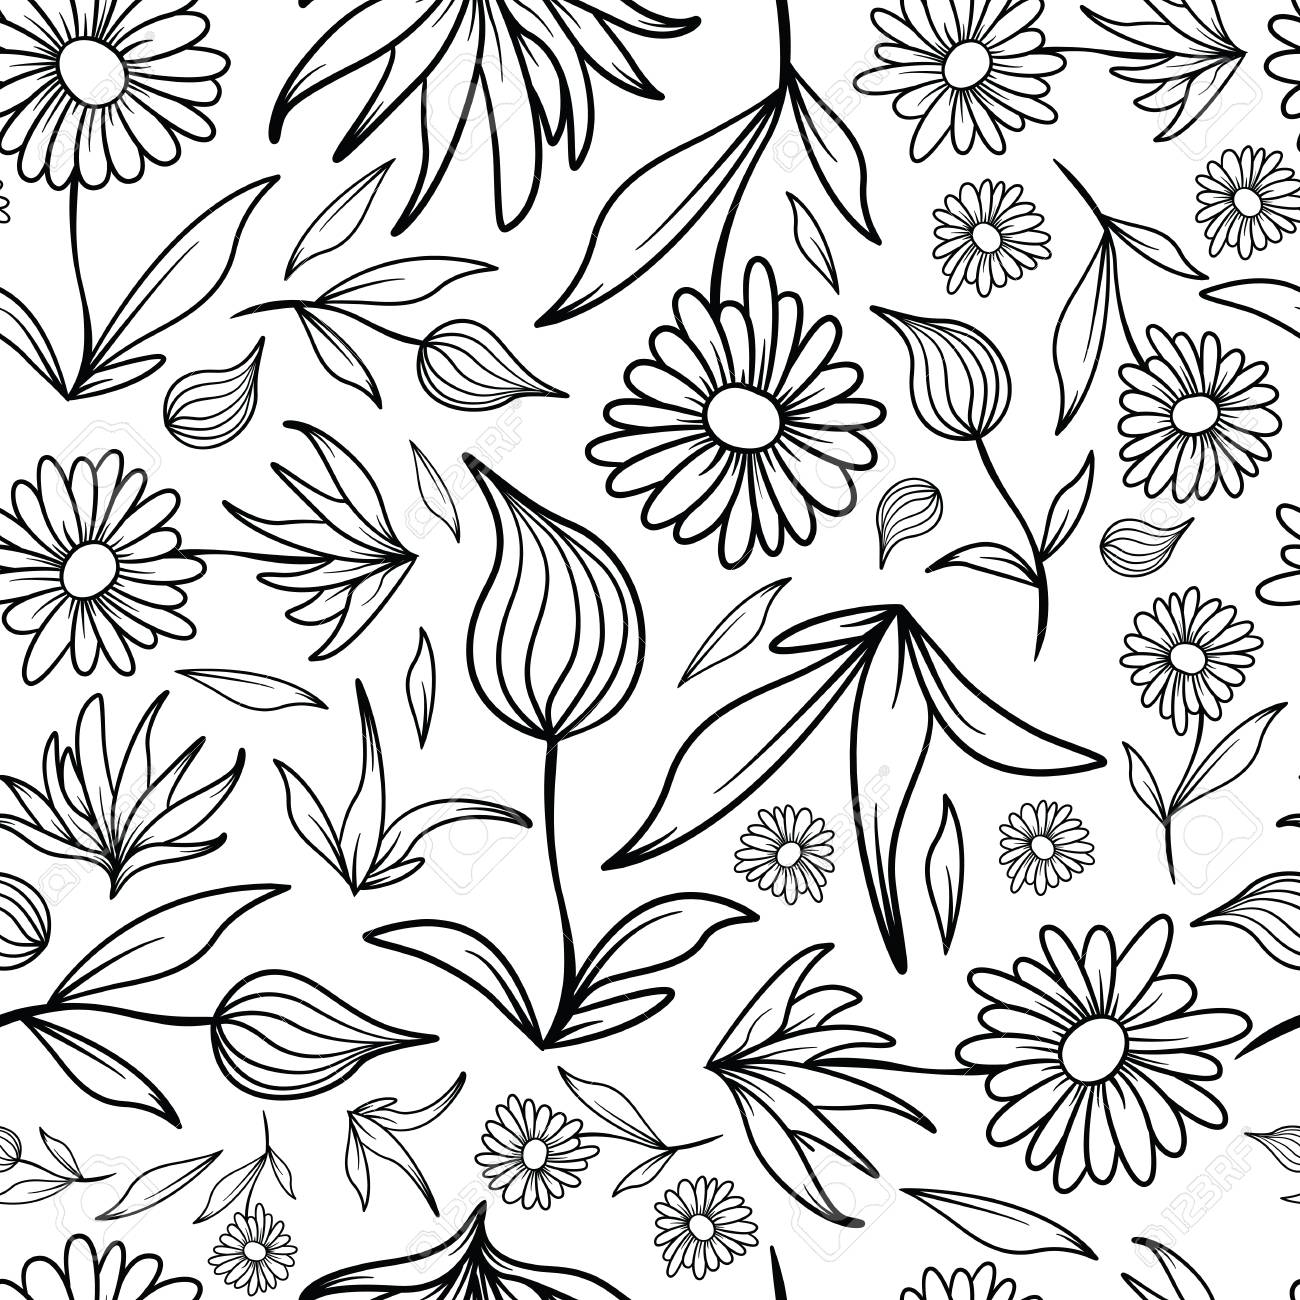 A seamless tiling pattern of line art flowers and leaves. - 114826151